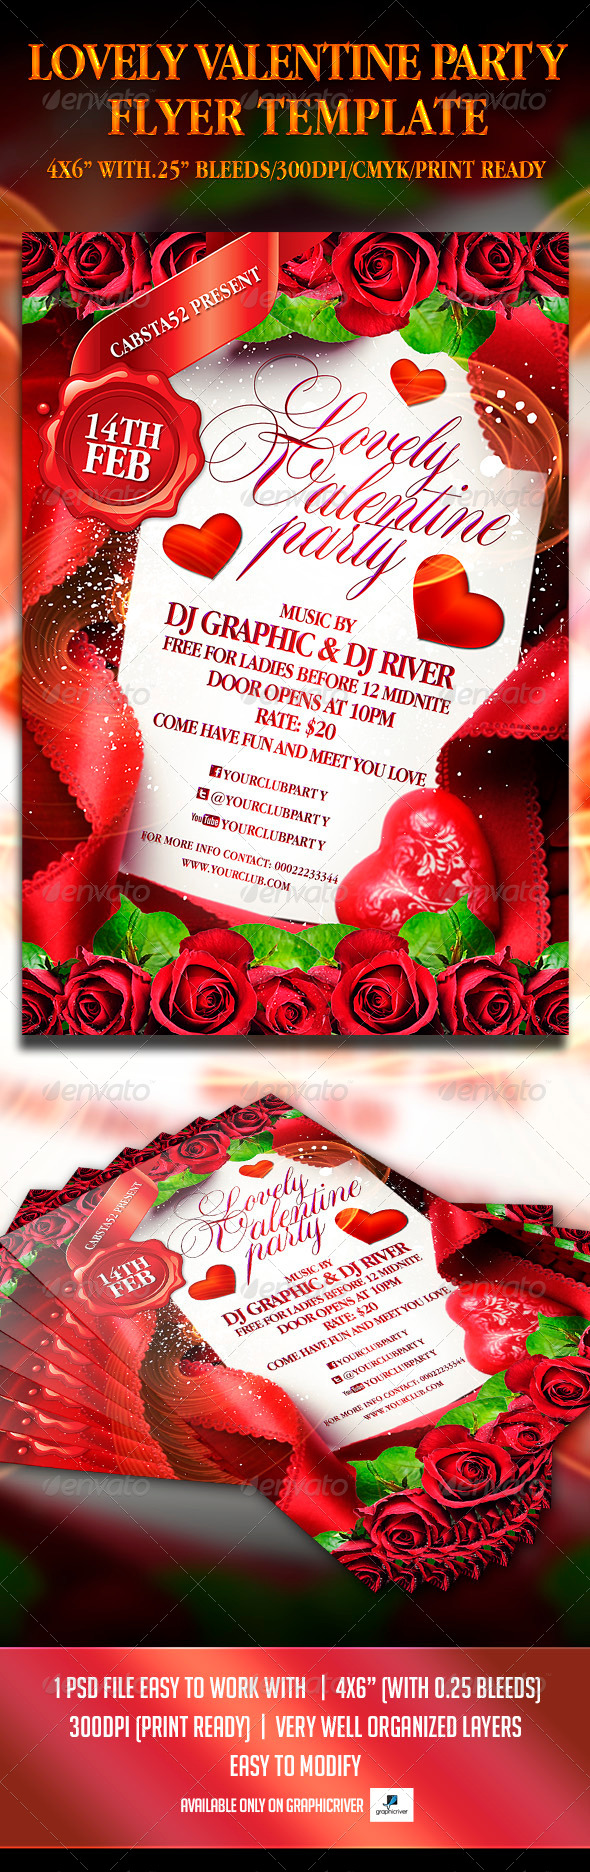 Lovely Valentine Party Flyer Template - Events Flyers